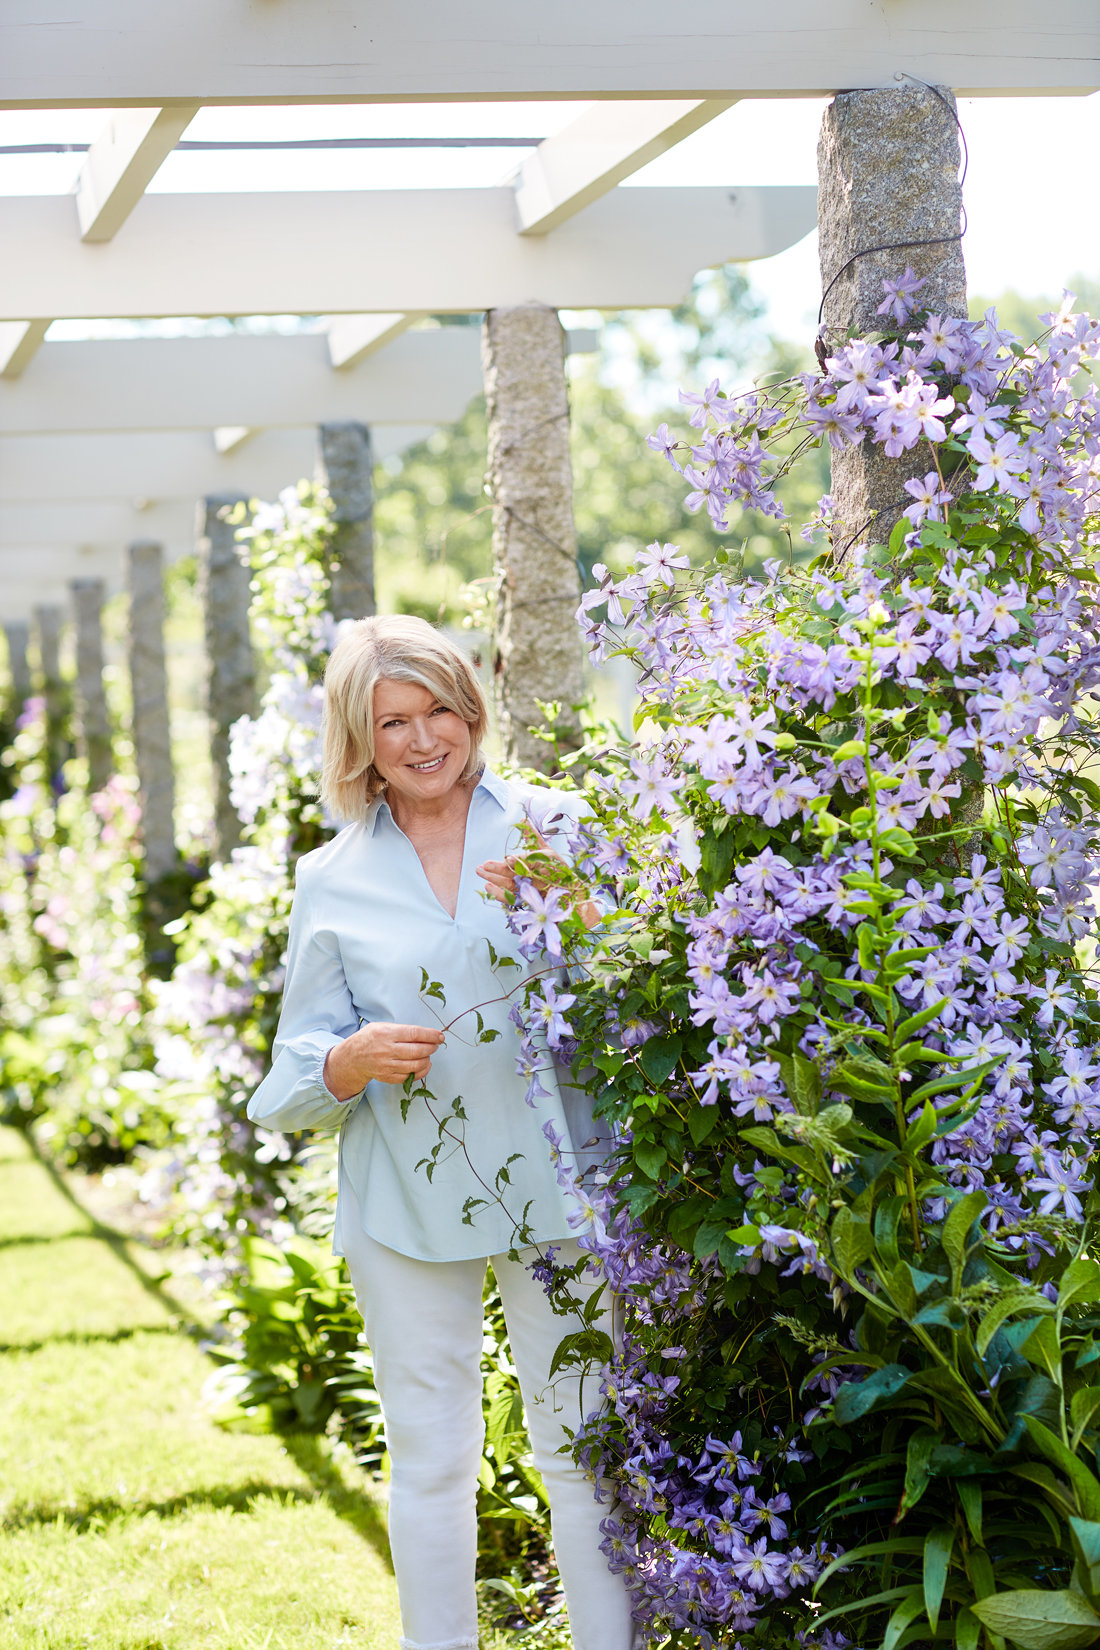 All About Martha's Border Garden, a Continual Show of Gorgeous Blooms